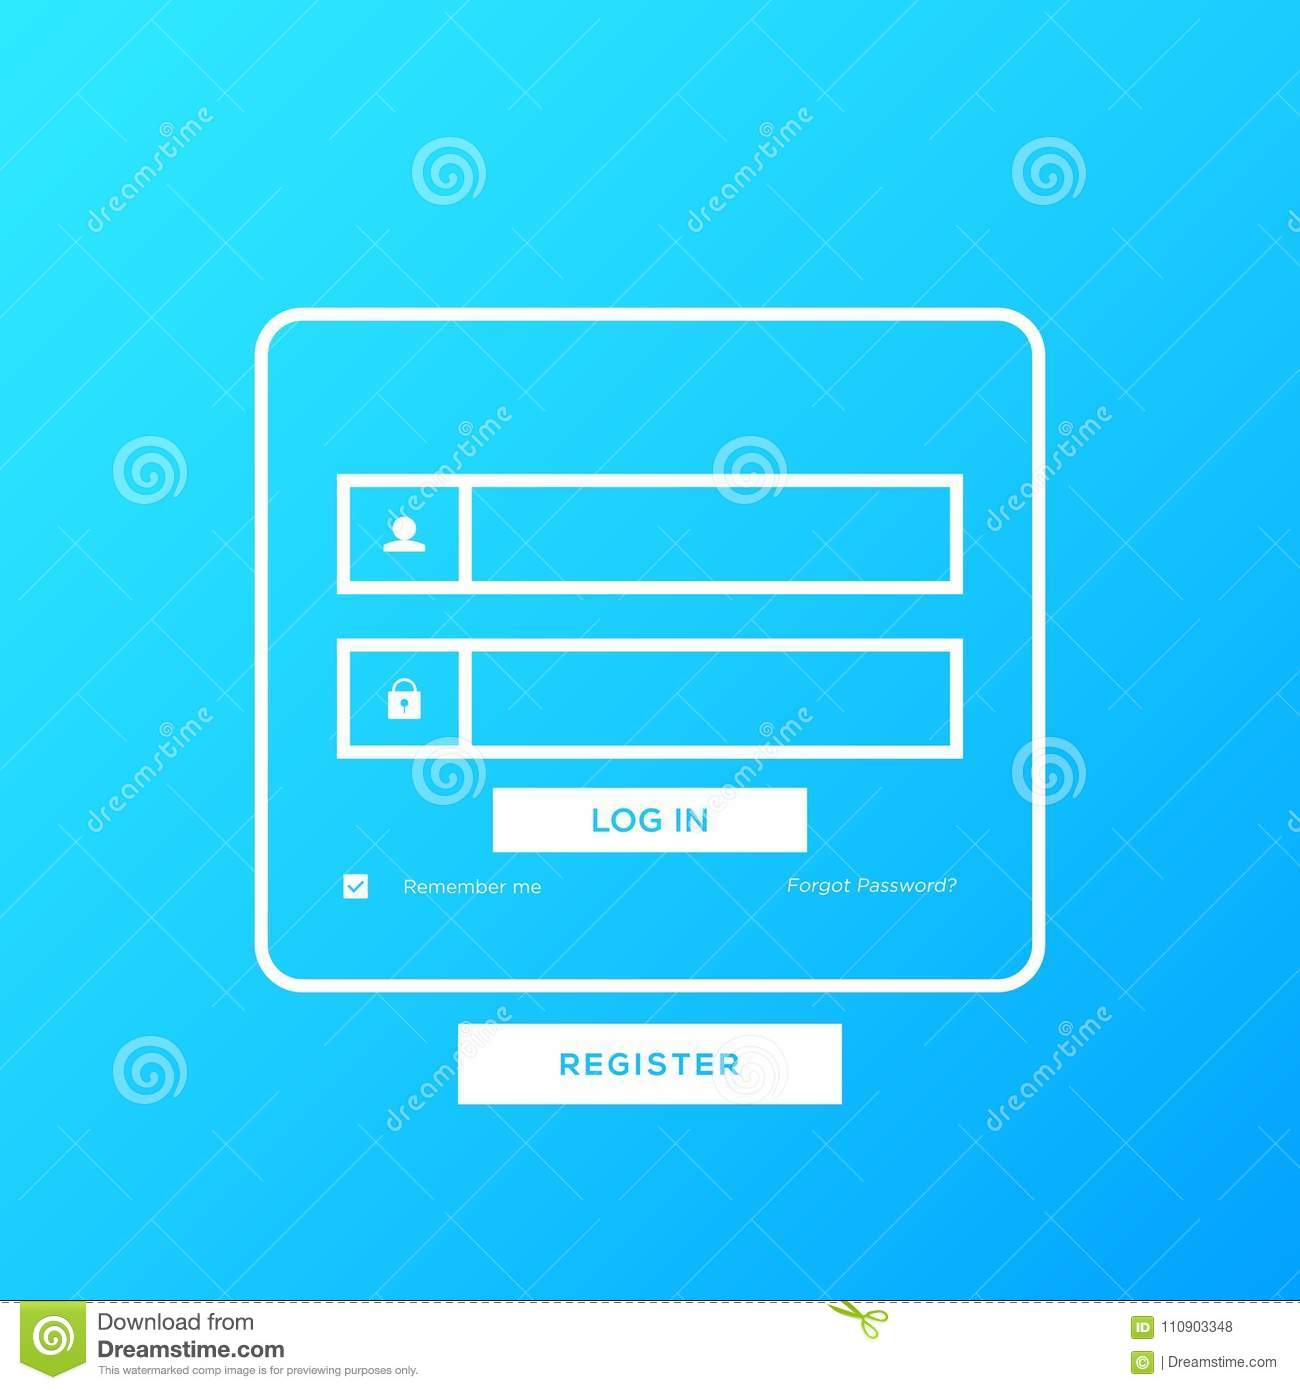 Login Design Template Vector Can Be Edited As Needed Stock